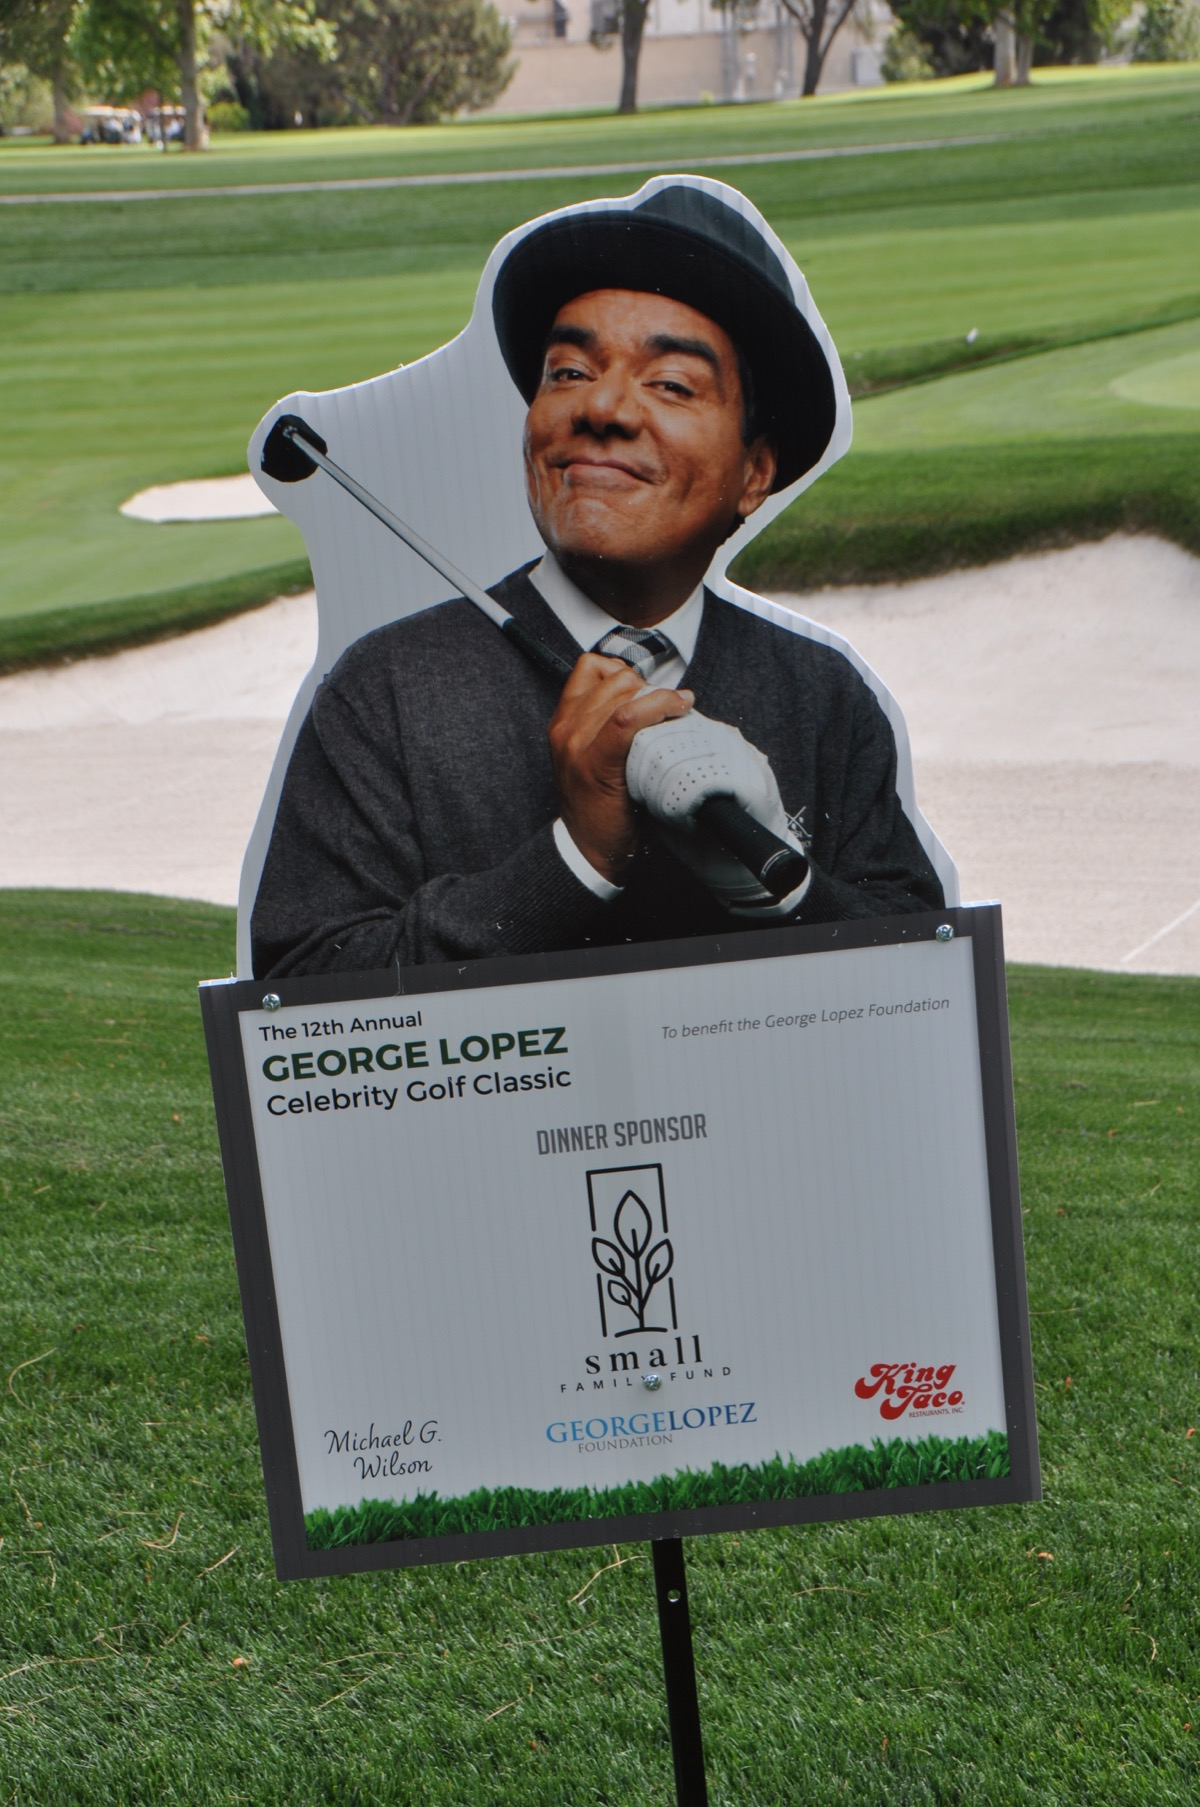 12th Annual George Lopez Celebrity Golf Classic Photos - 93.jpg